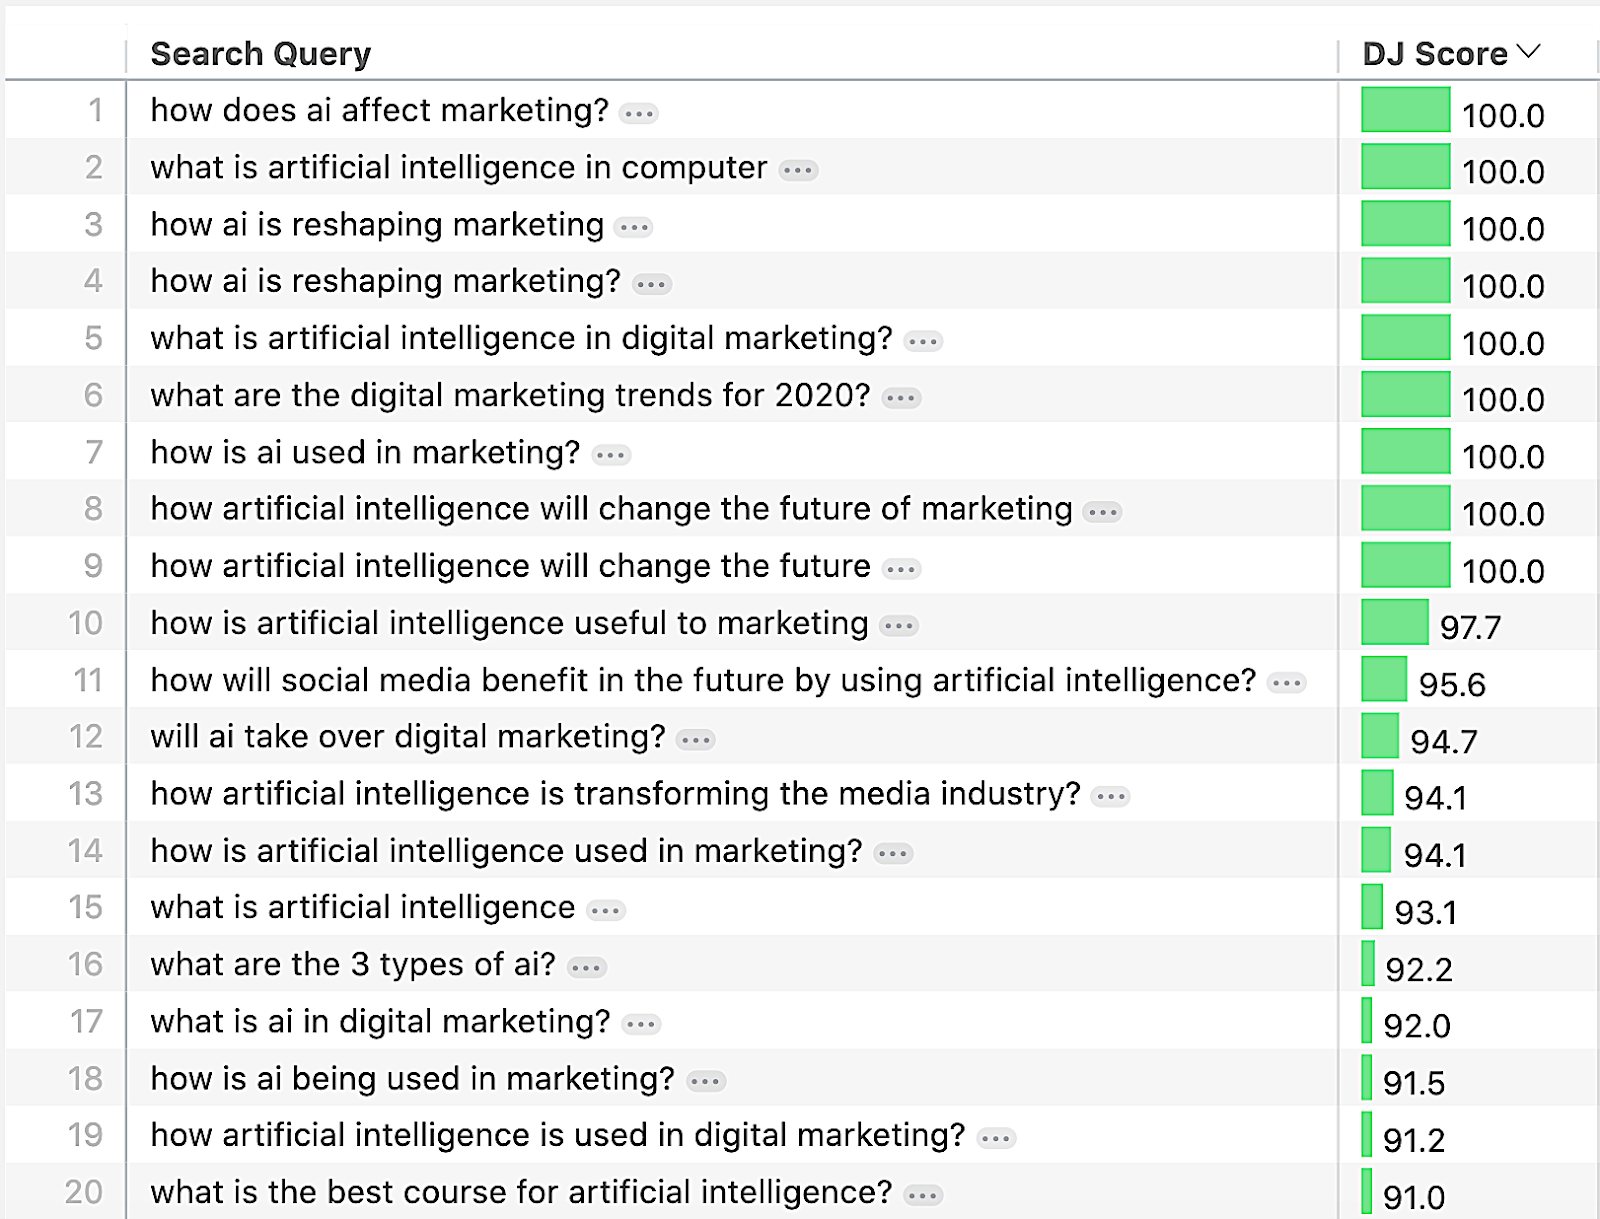 How does AI affect marketing?